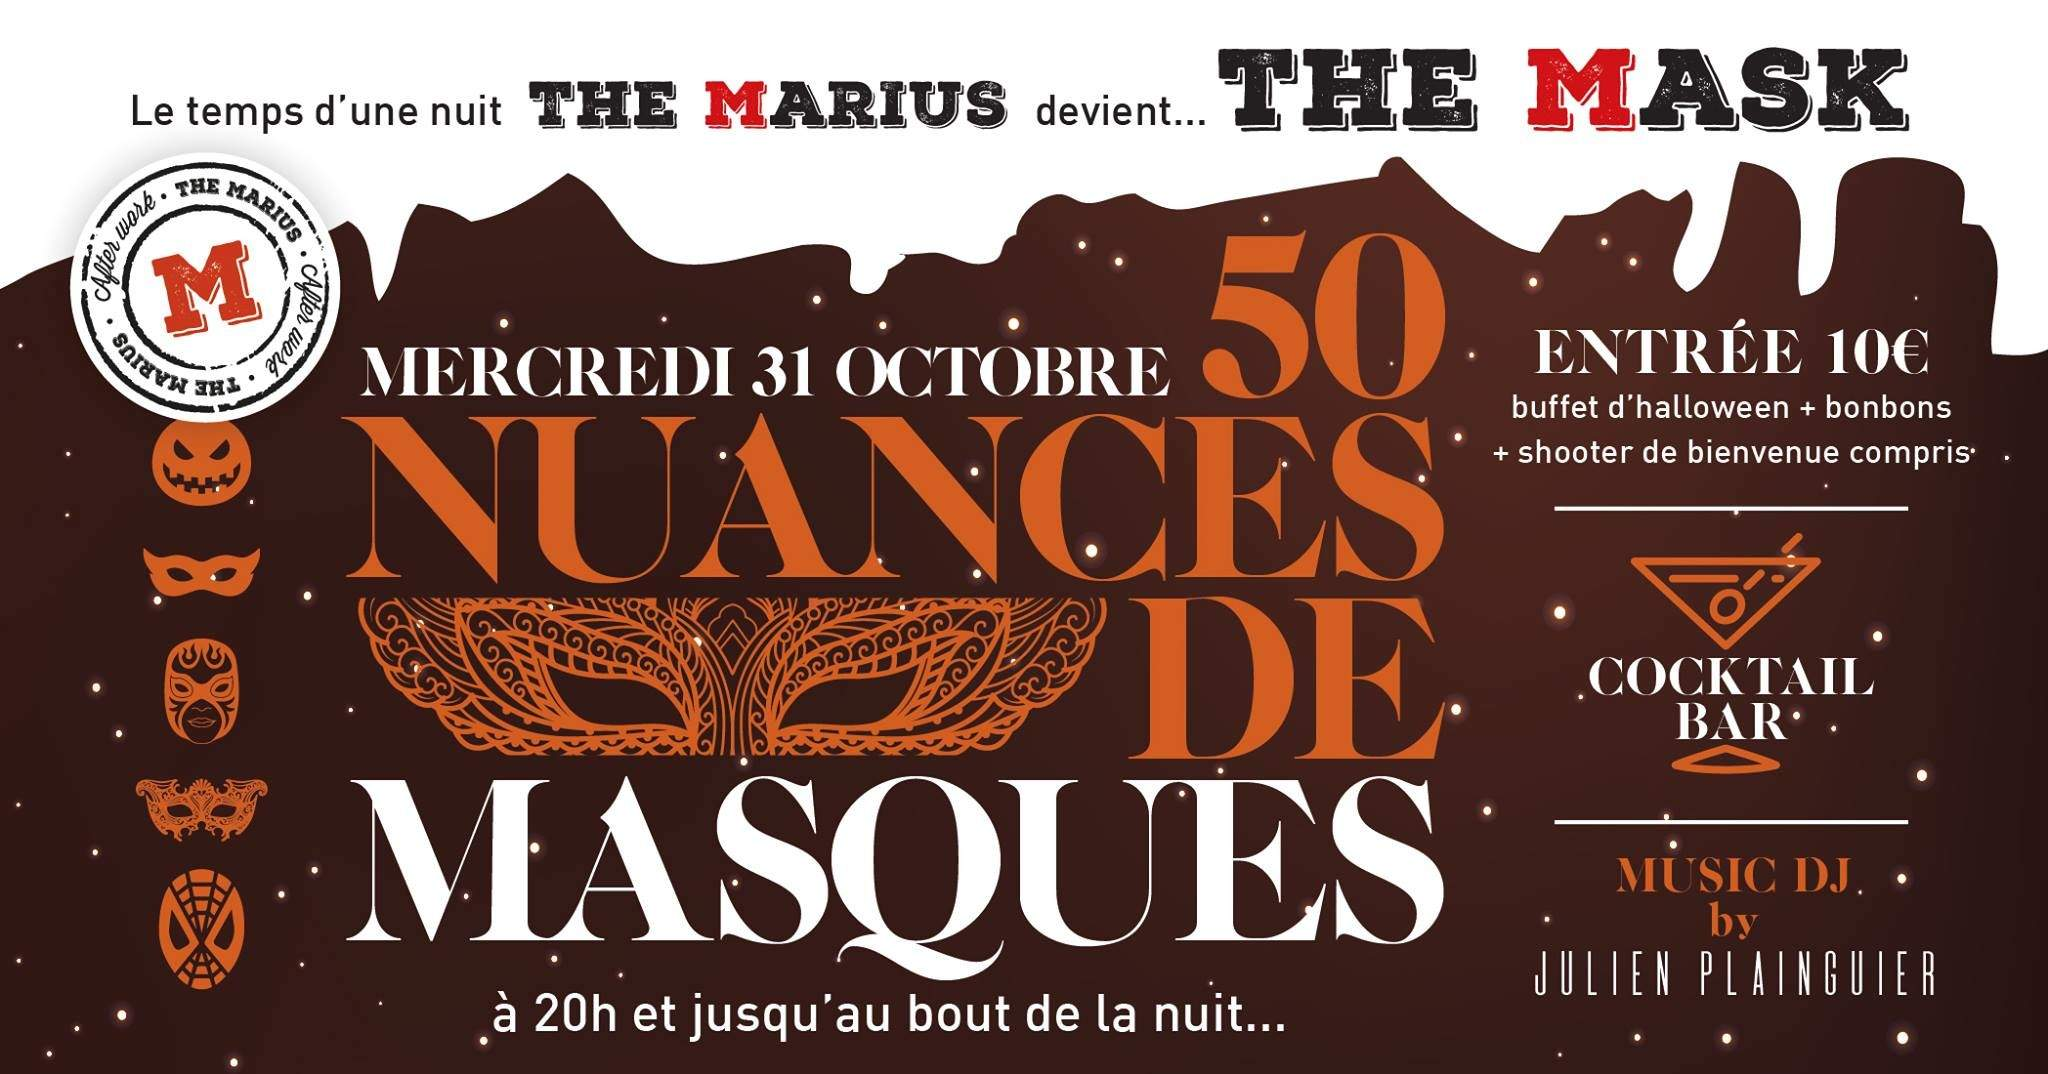 The Marius devient The Mask